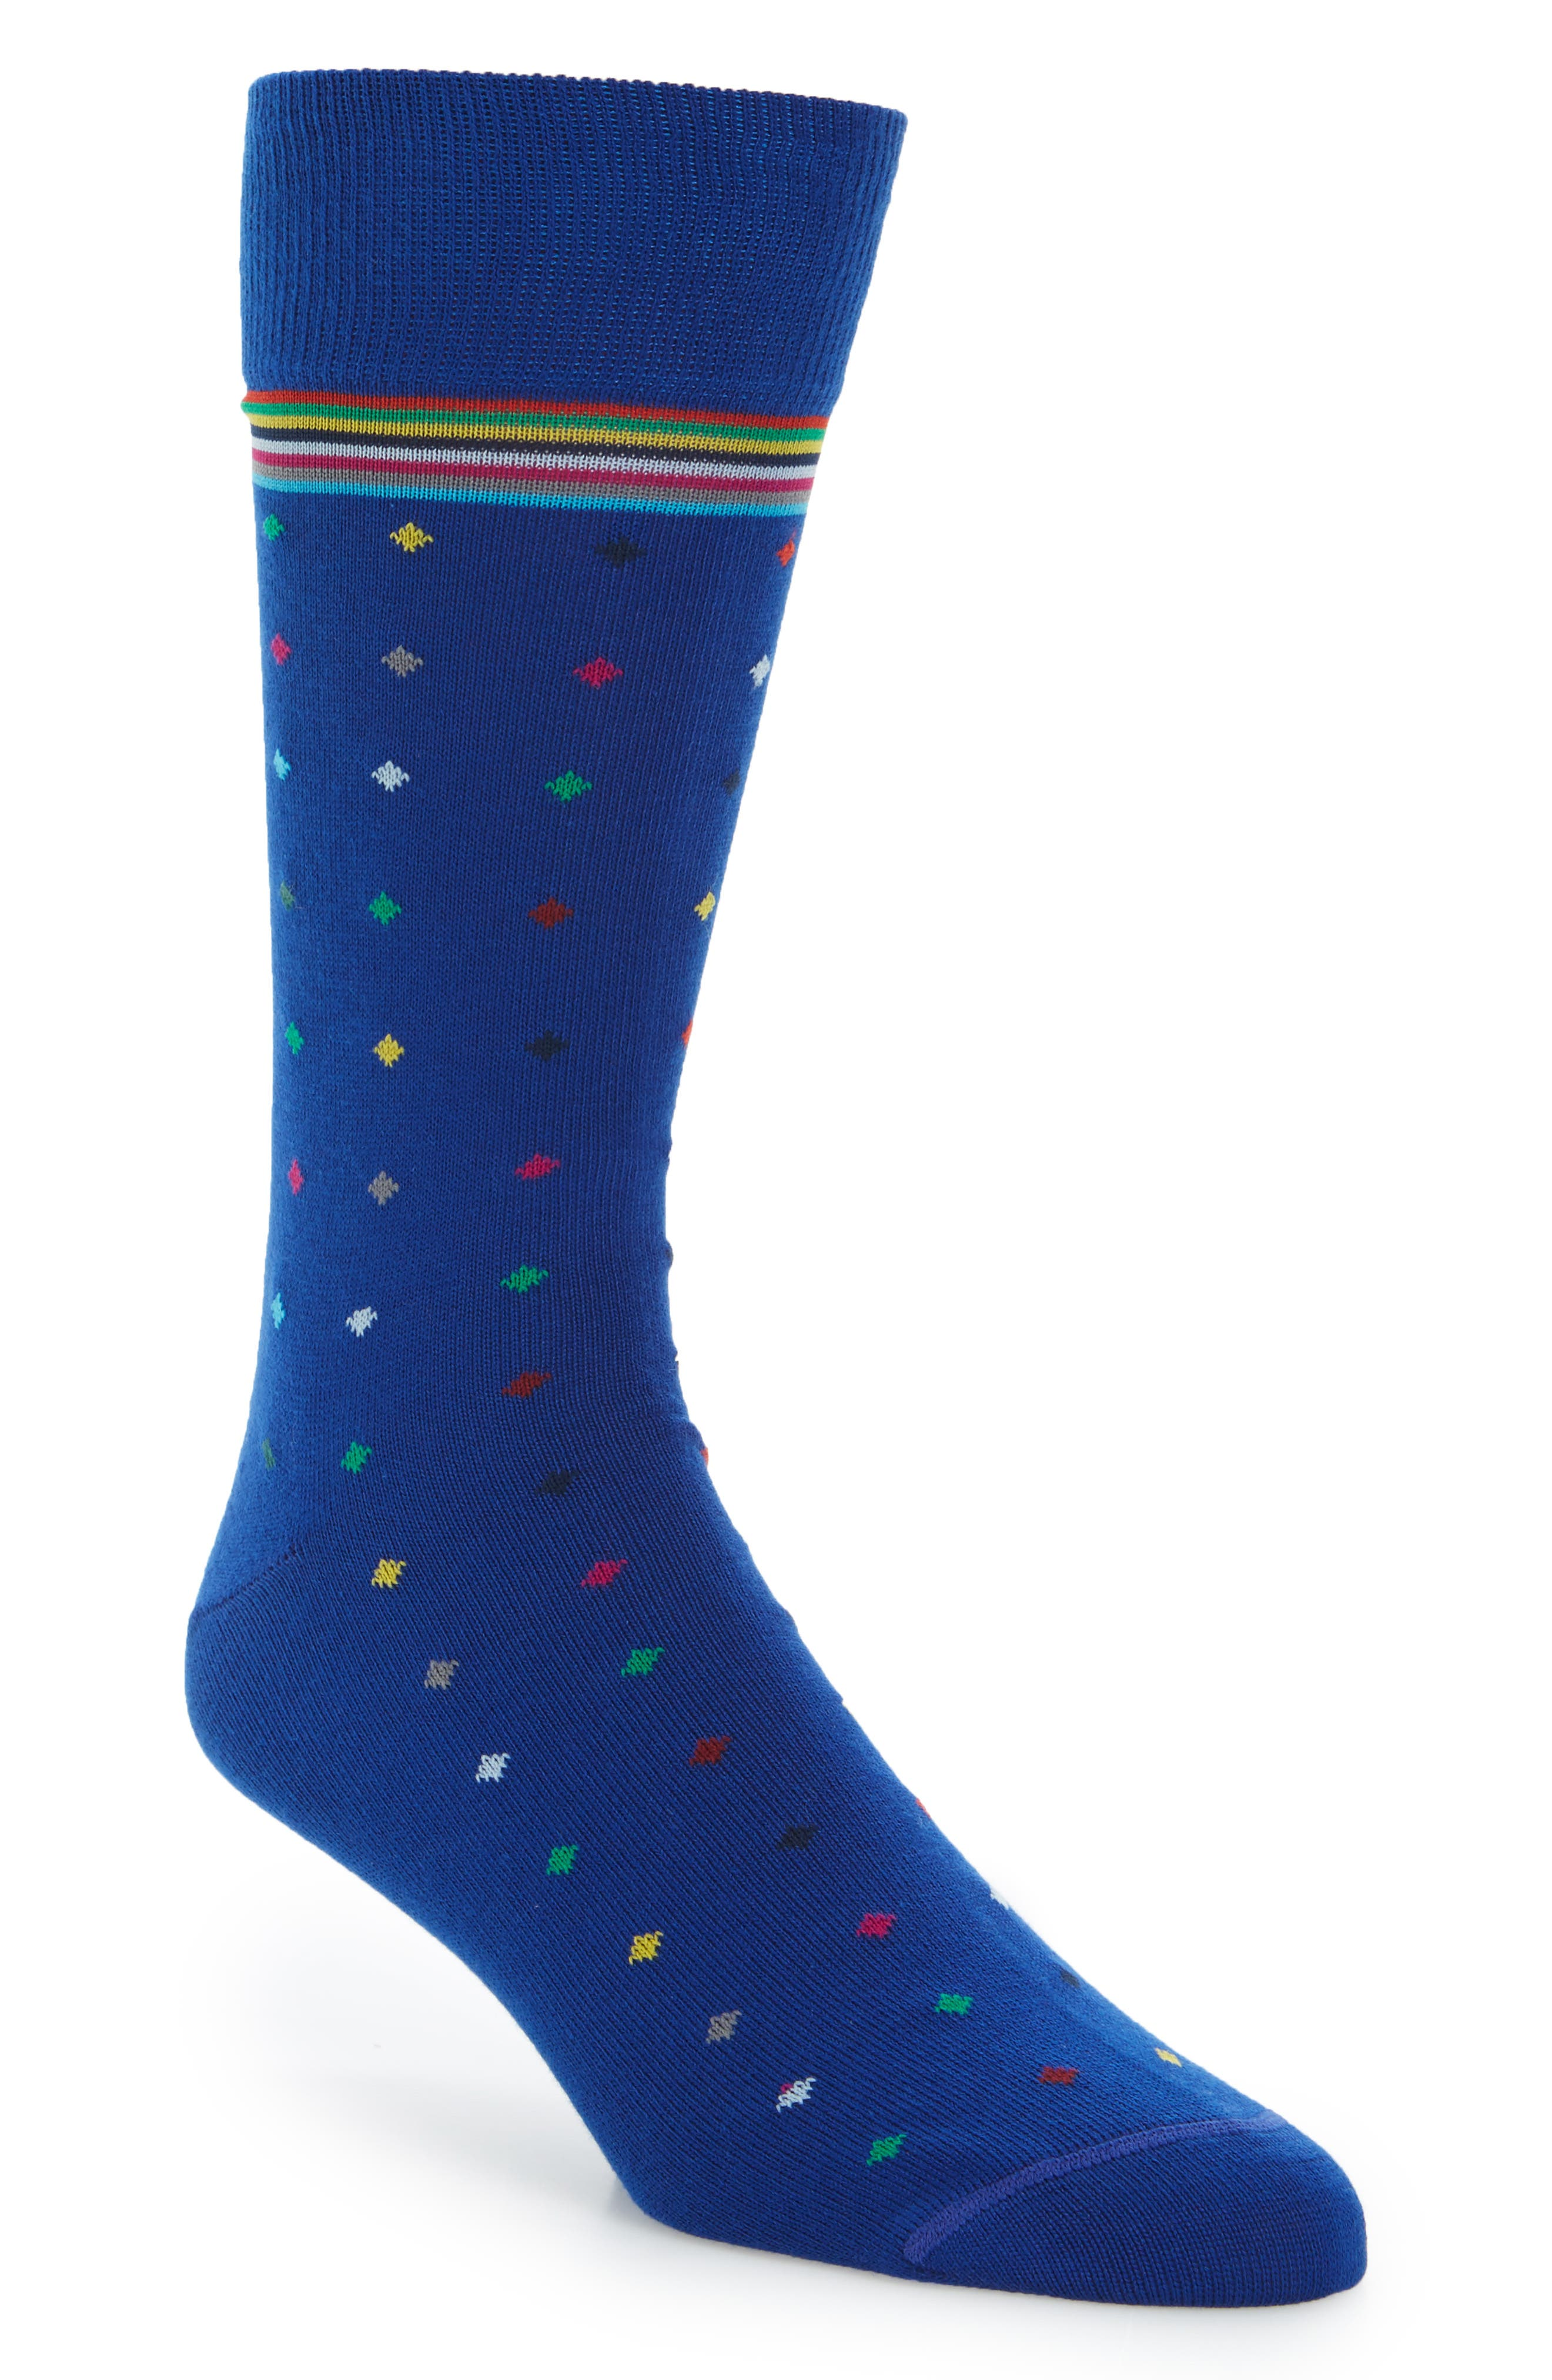 Diamond Stripe Socks,                             Main thumbnail 1, color,                             Blue